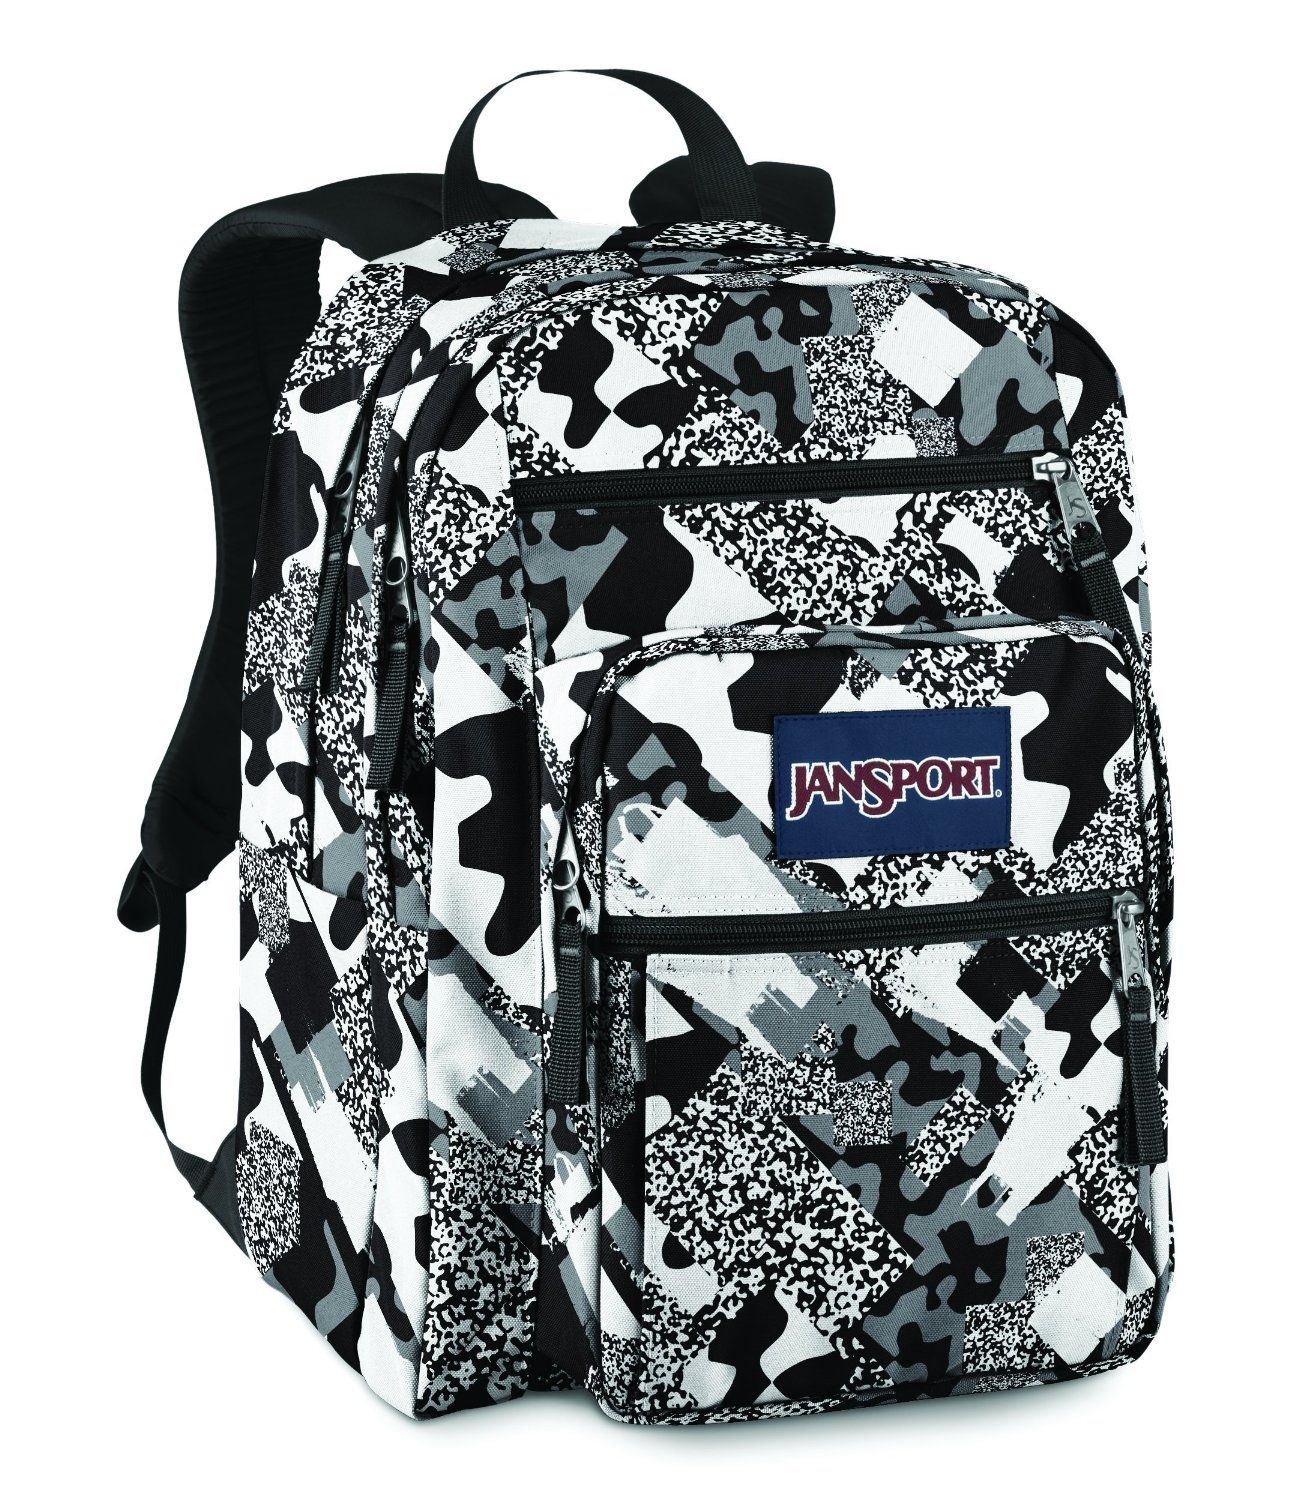 Jansport Big Student Backpack Black / White Camo | Jansport ...